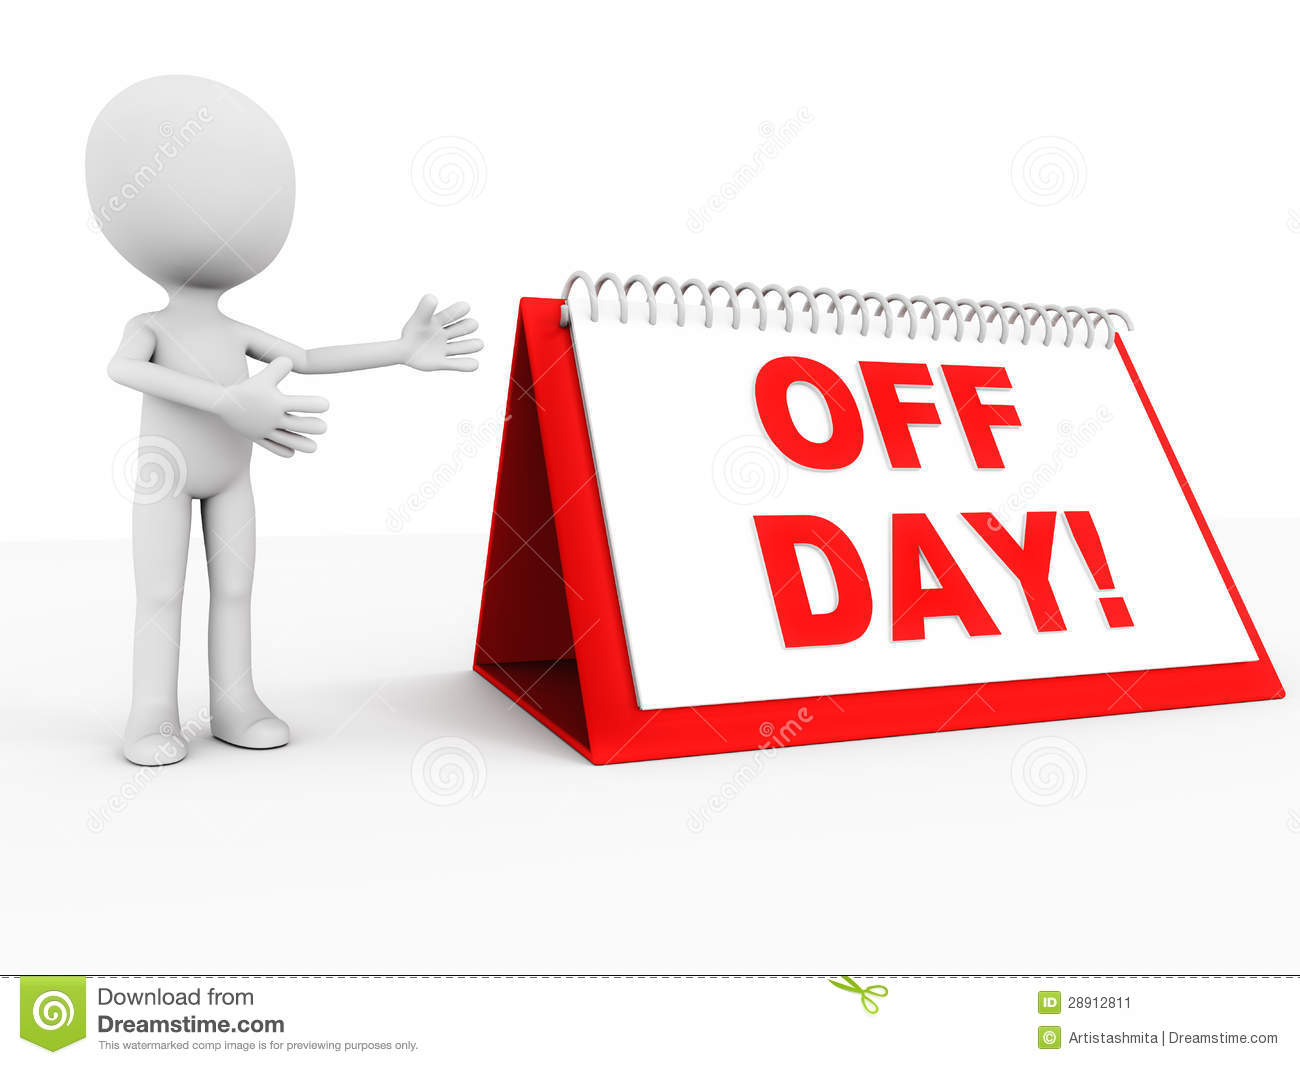 Http Dreamstime Com Stock Image Off Day Image28912811